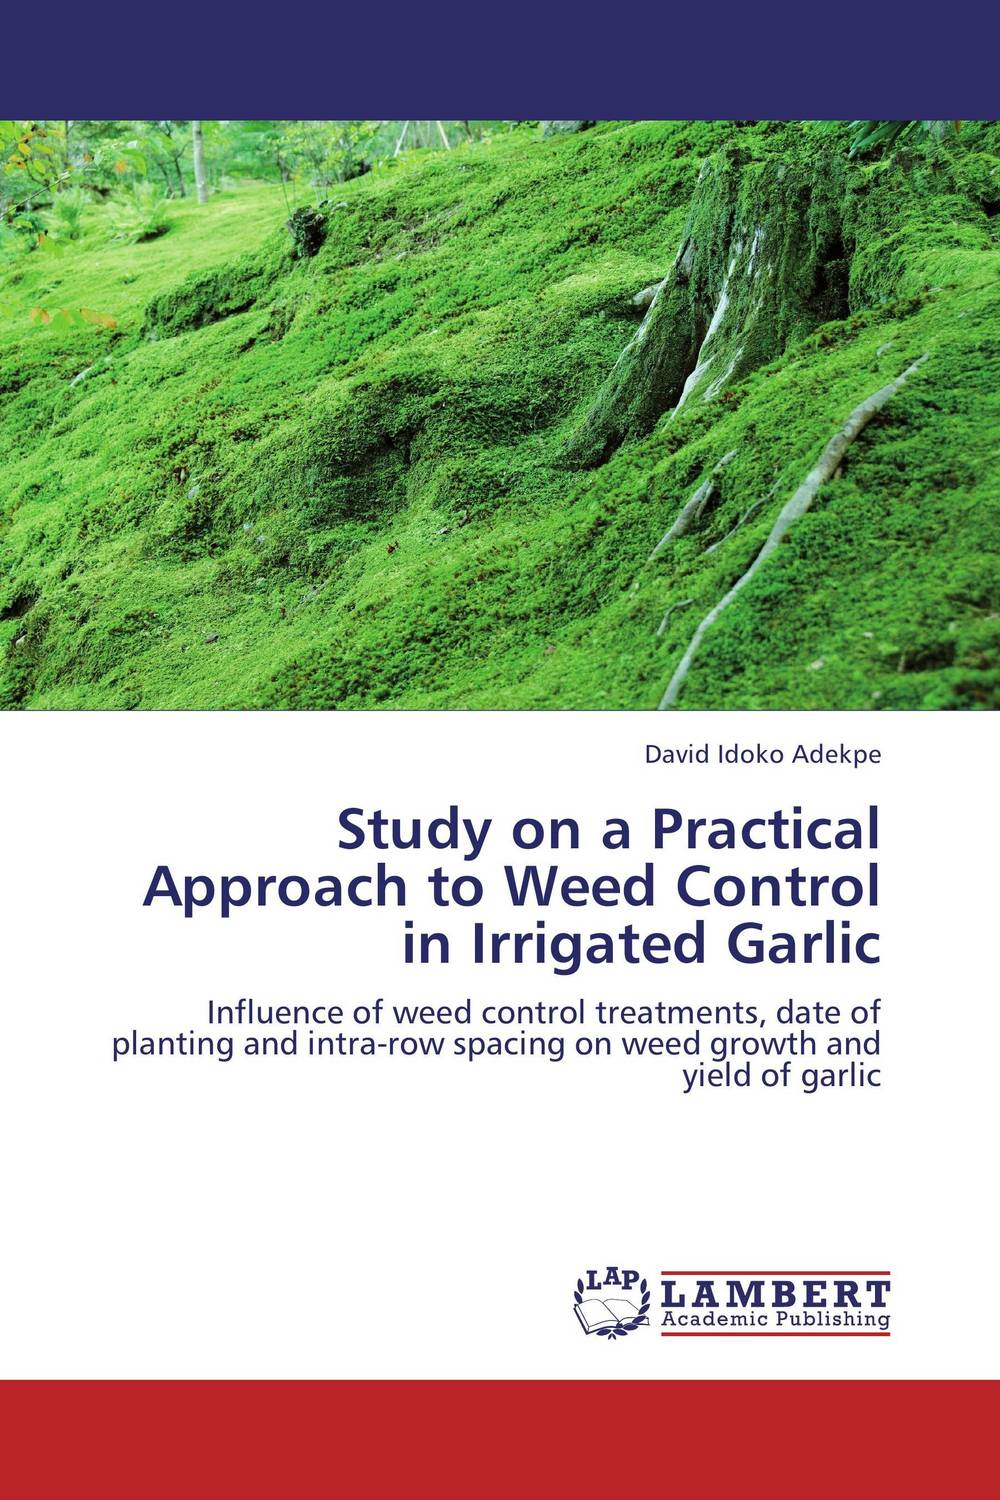 Study on a Practical Approach to Weed Control in Irrigated Garlic belousov a security features of banknotes and other documents methods of authentication manual денежные билеты бланки ценных бумаг и документов